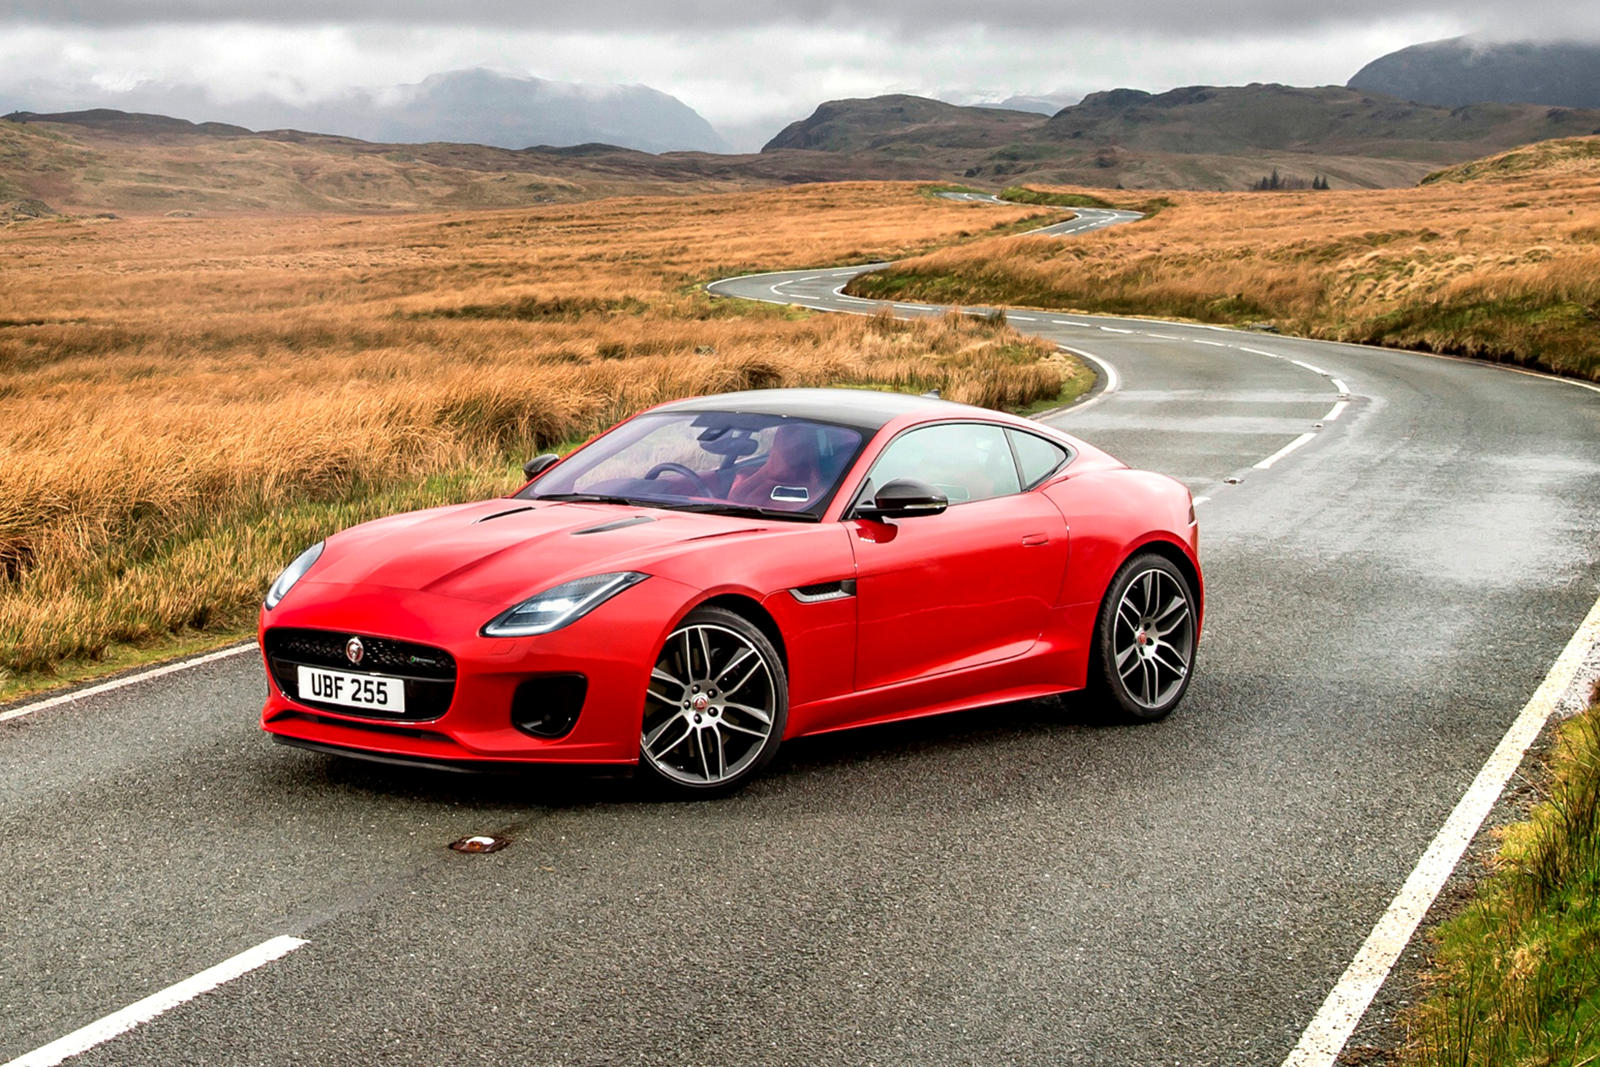 2020 jaguar f type r dynamic coupe price review ratings and pictures carindigo com 2020 jaguar f type r dynamic coupe